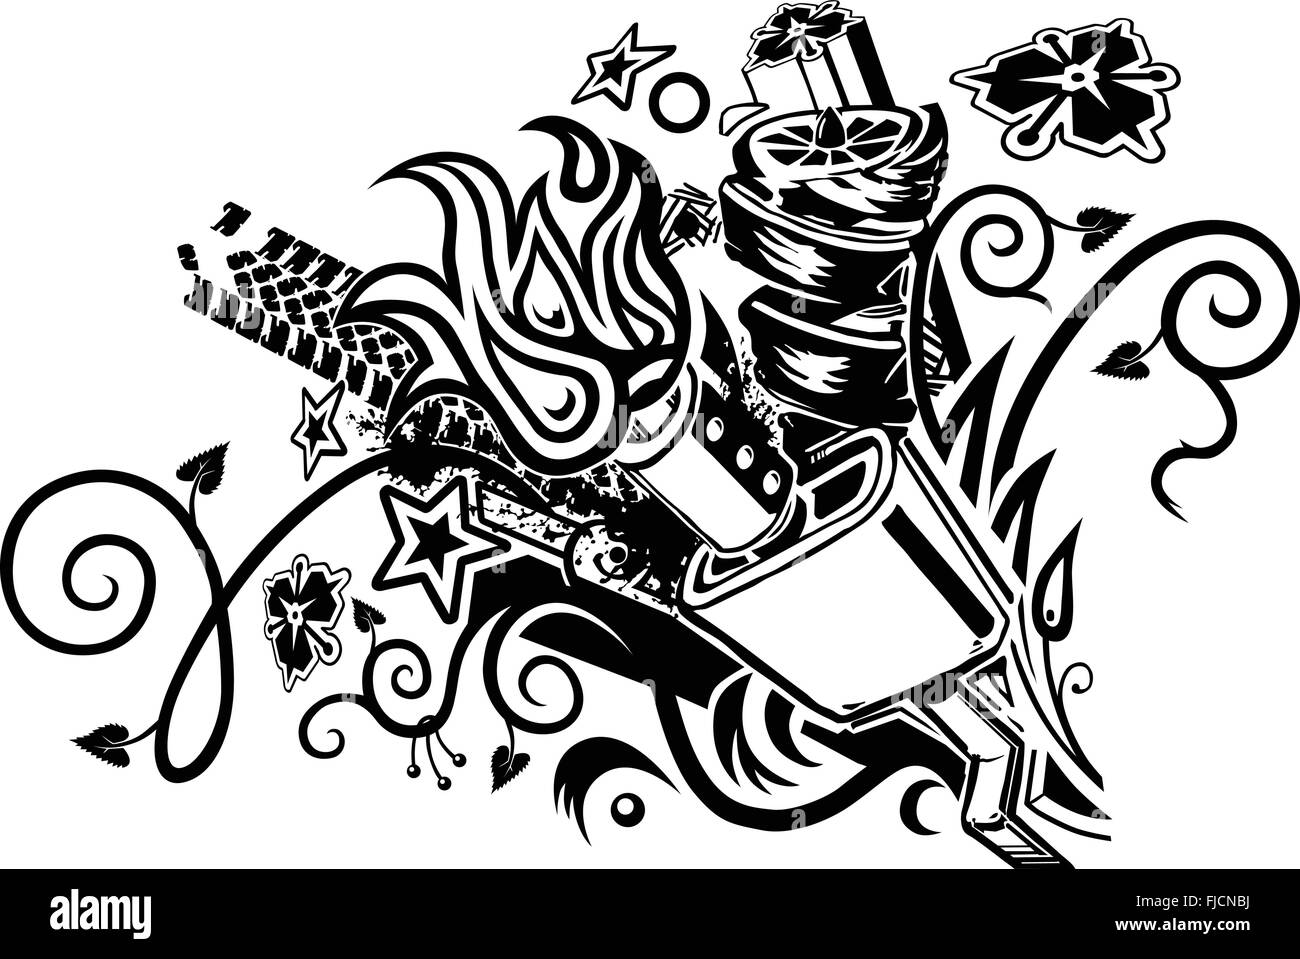 An eclectic tattoo-like graphic element featuring a car muffler as well as assorted abstract elements. - Stock Vector